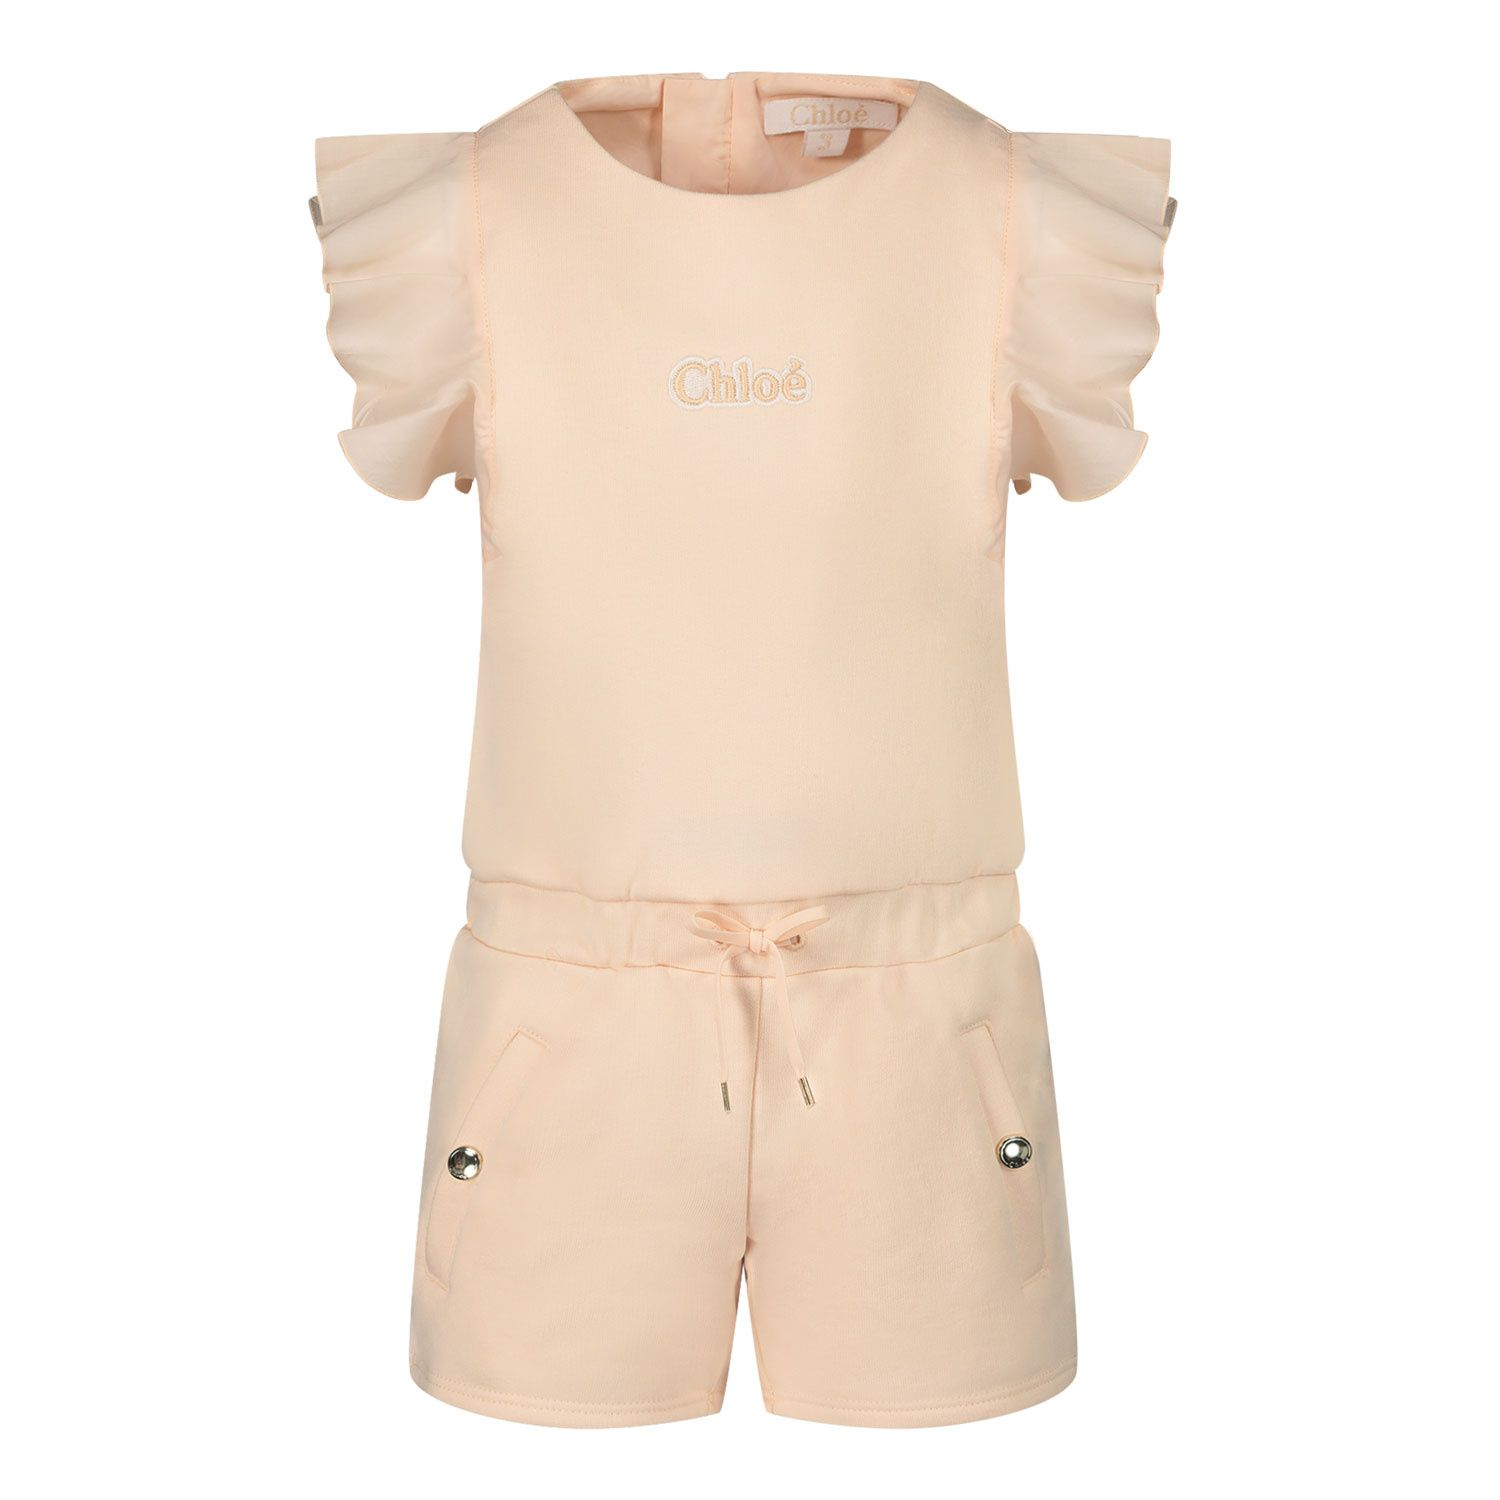 Picture of Chloé C04181 baby jumpsuit salmon